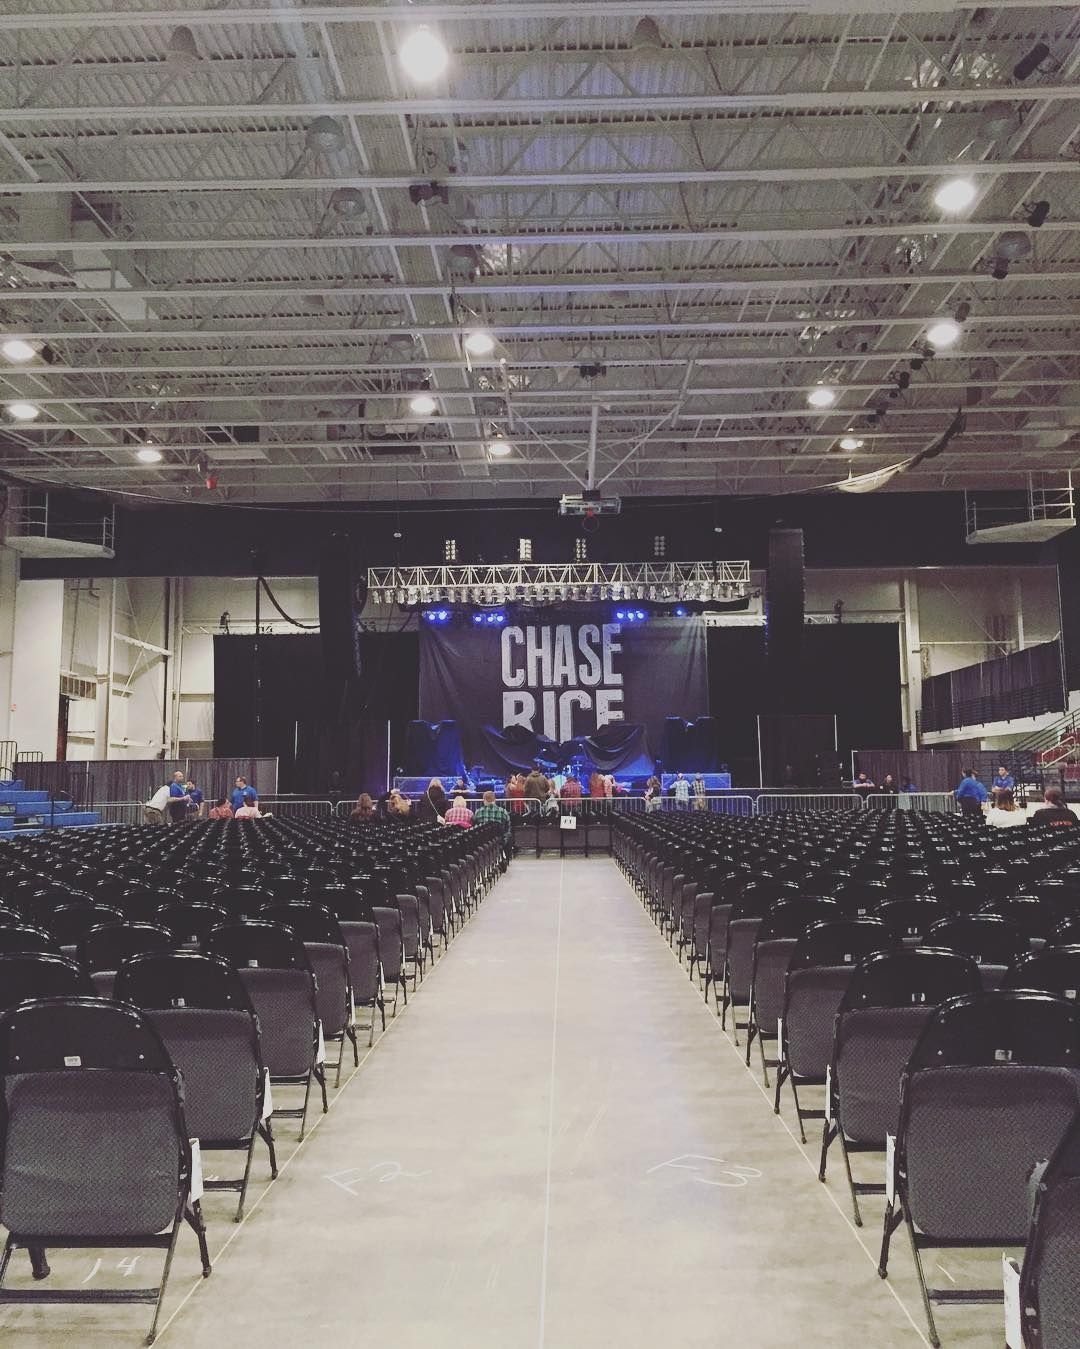 We're ready for you @chaserice! #FiveFlagsCenter #Dubuque #Iowa #Country #ChaseRice #Everybodyweknowdoes